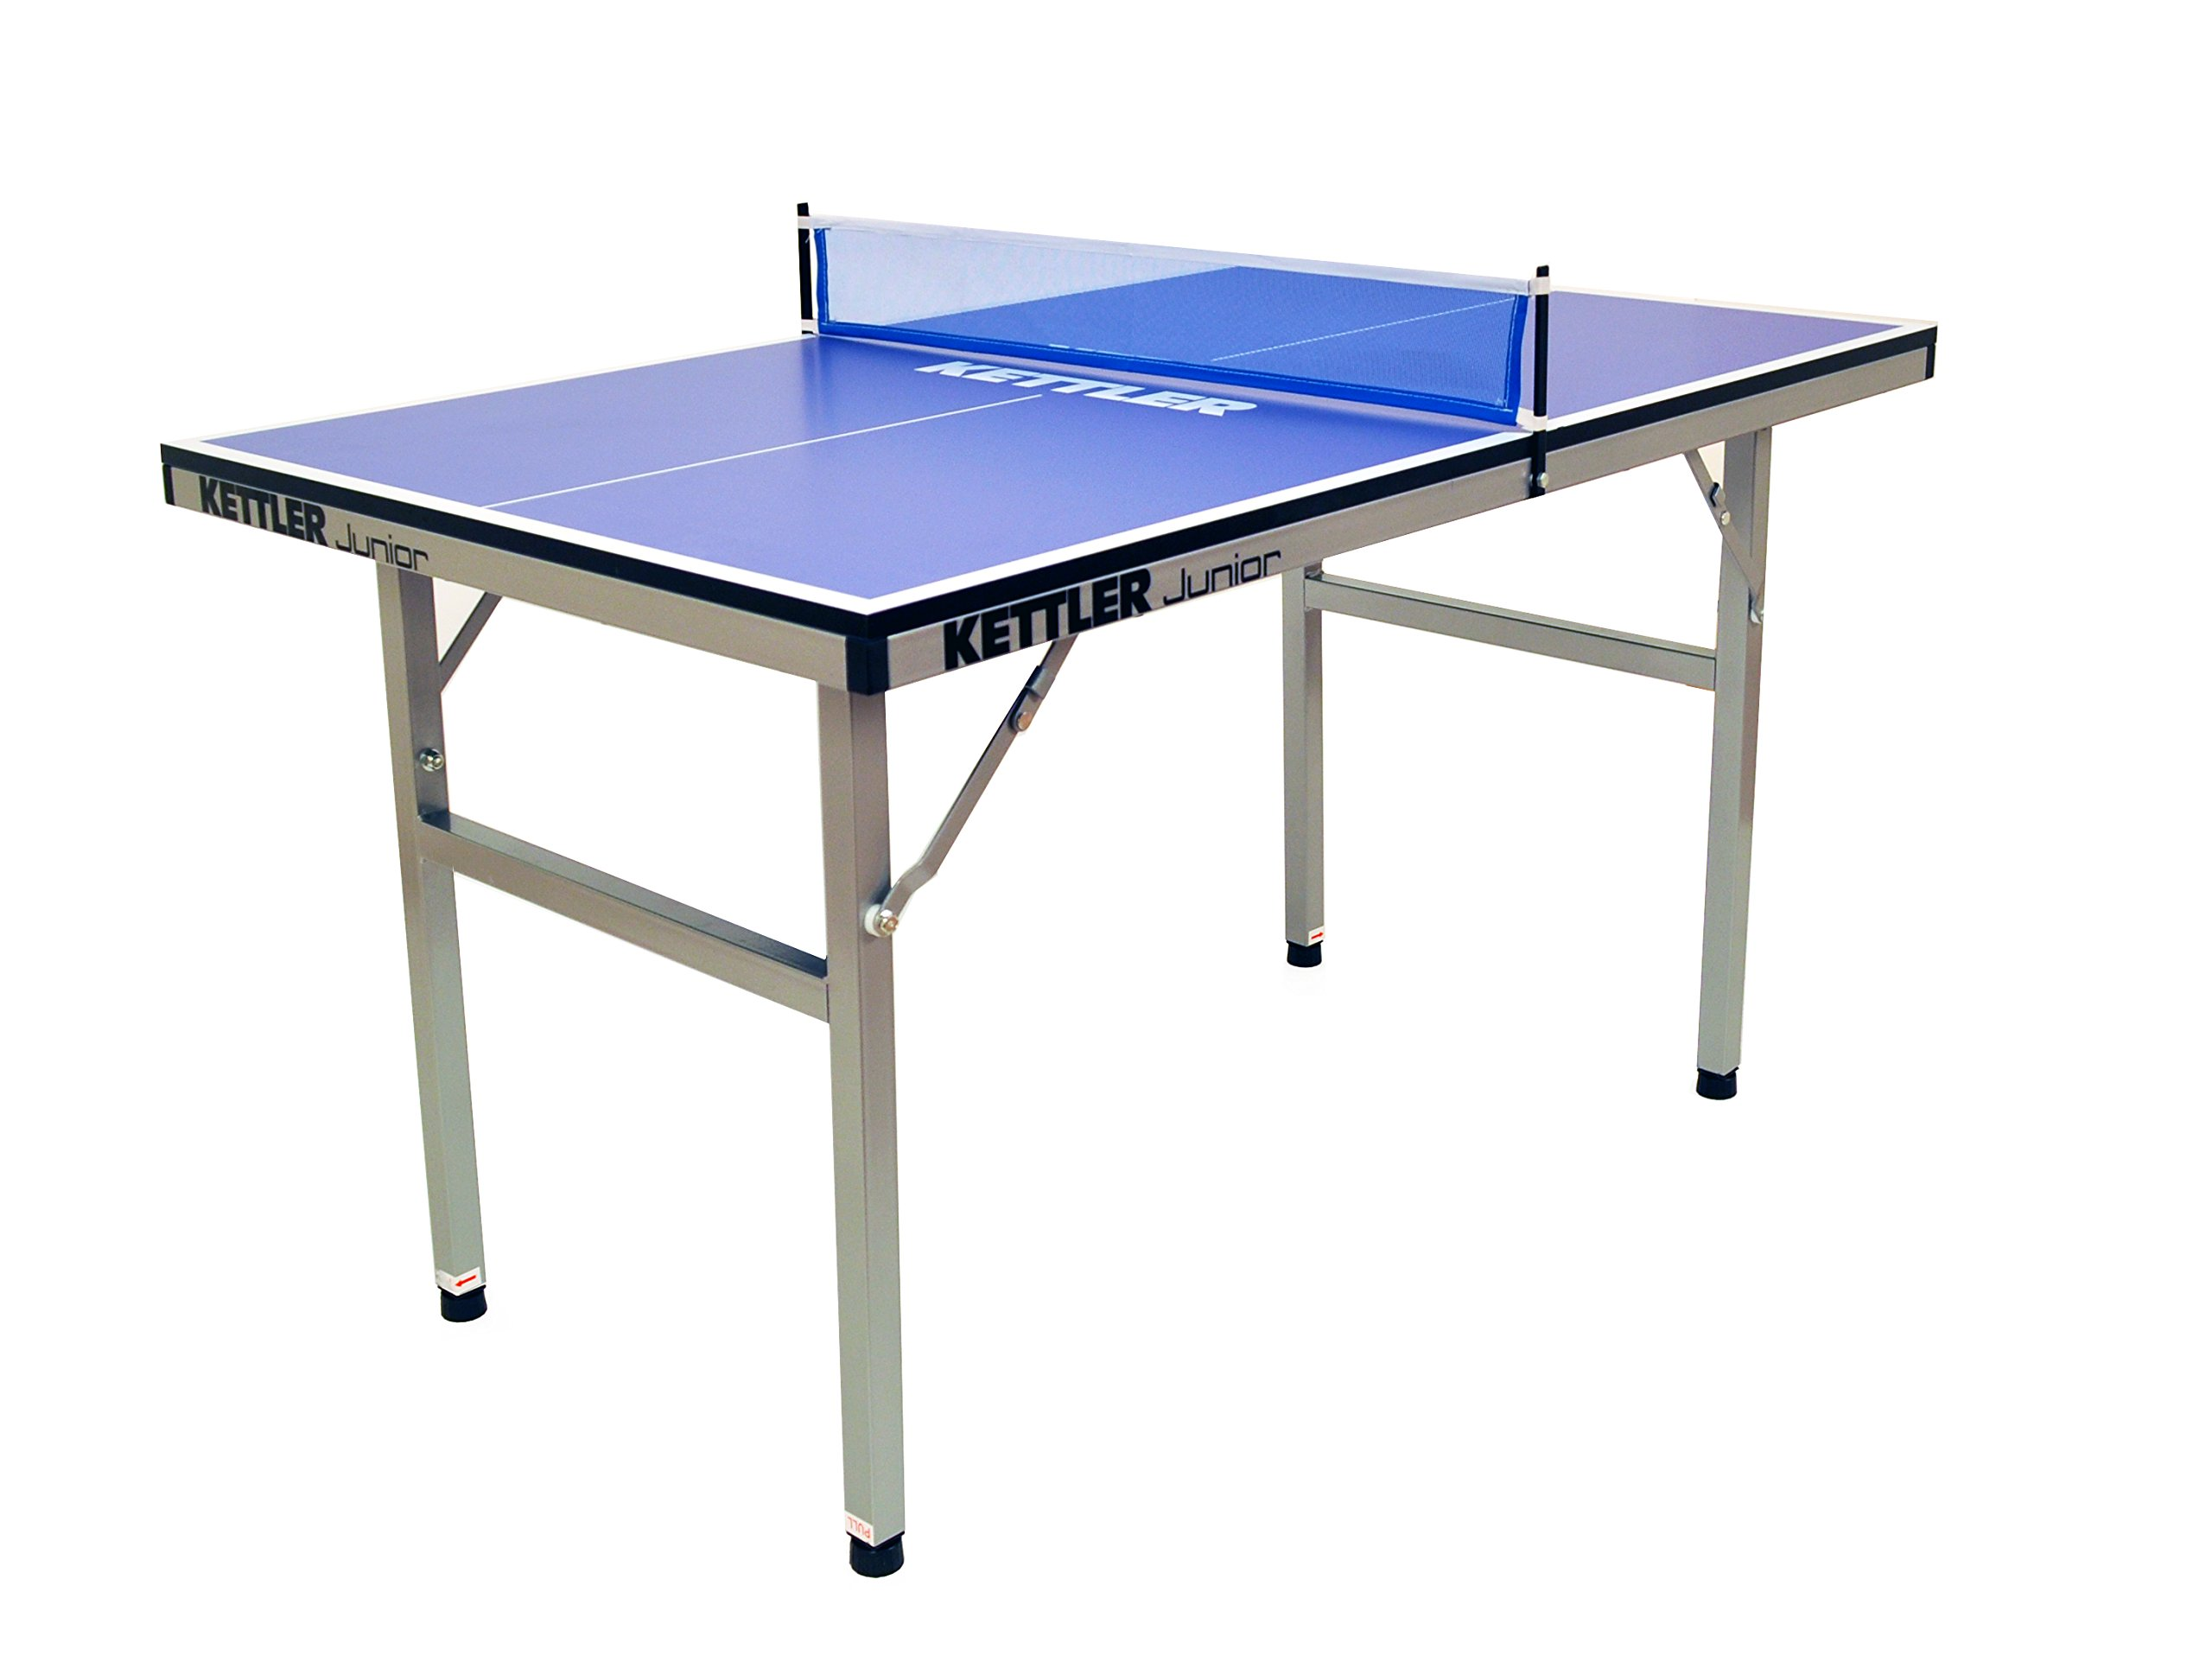 Kettler Junior Mid-Sized Collapsible Indoor Table Tennis Table, Blue Top by Kettler